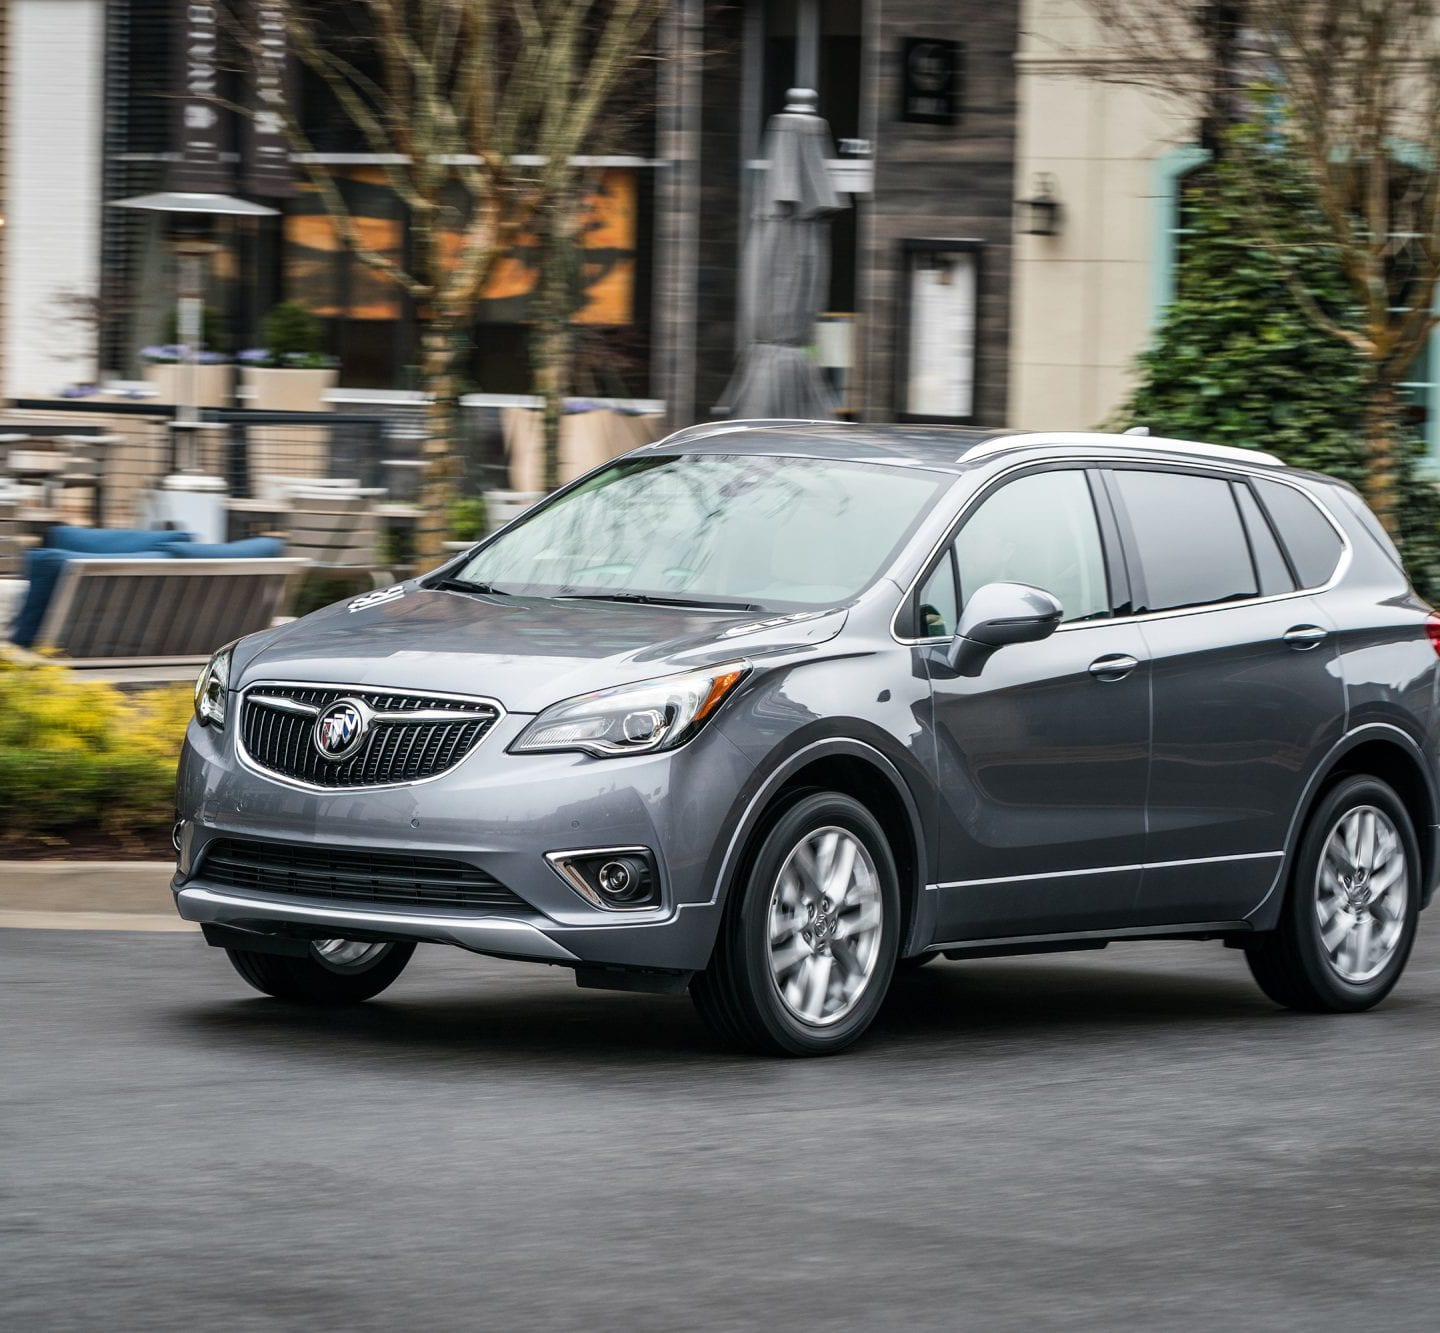 2019 Buick Envision Is Well-Rounded Goodness